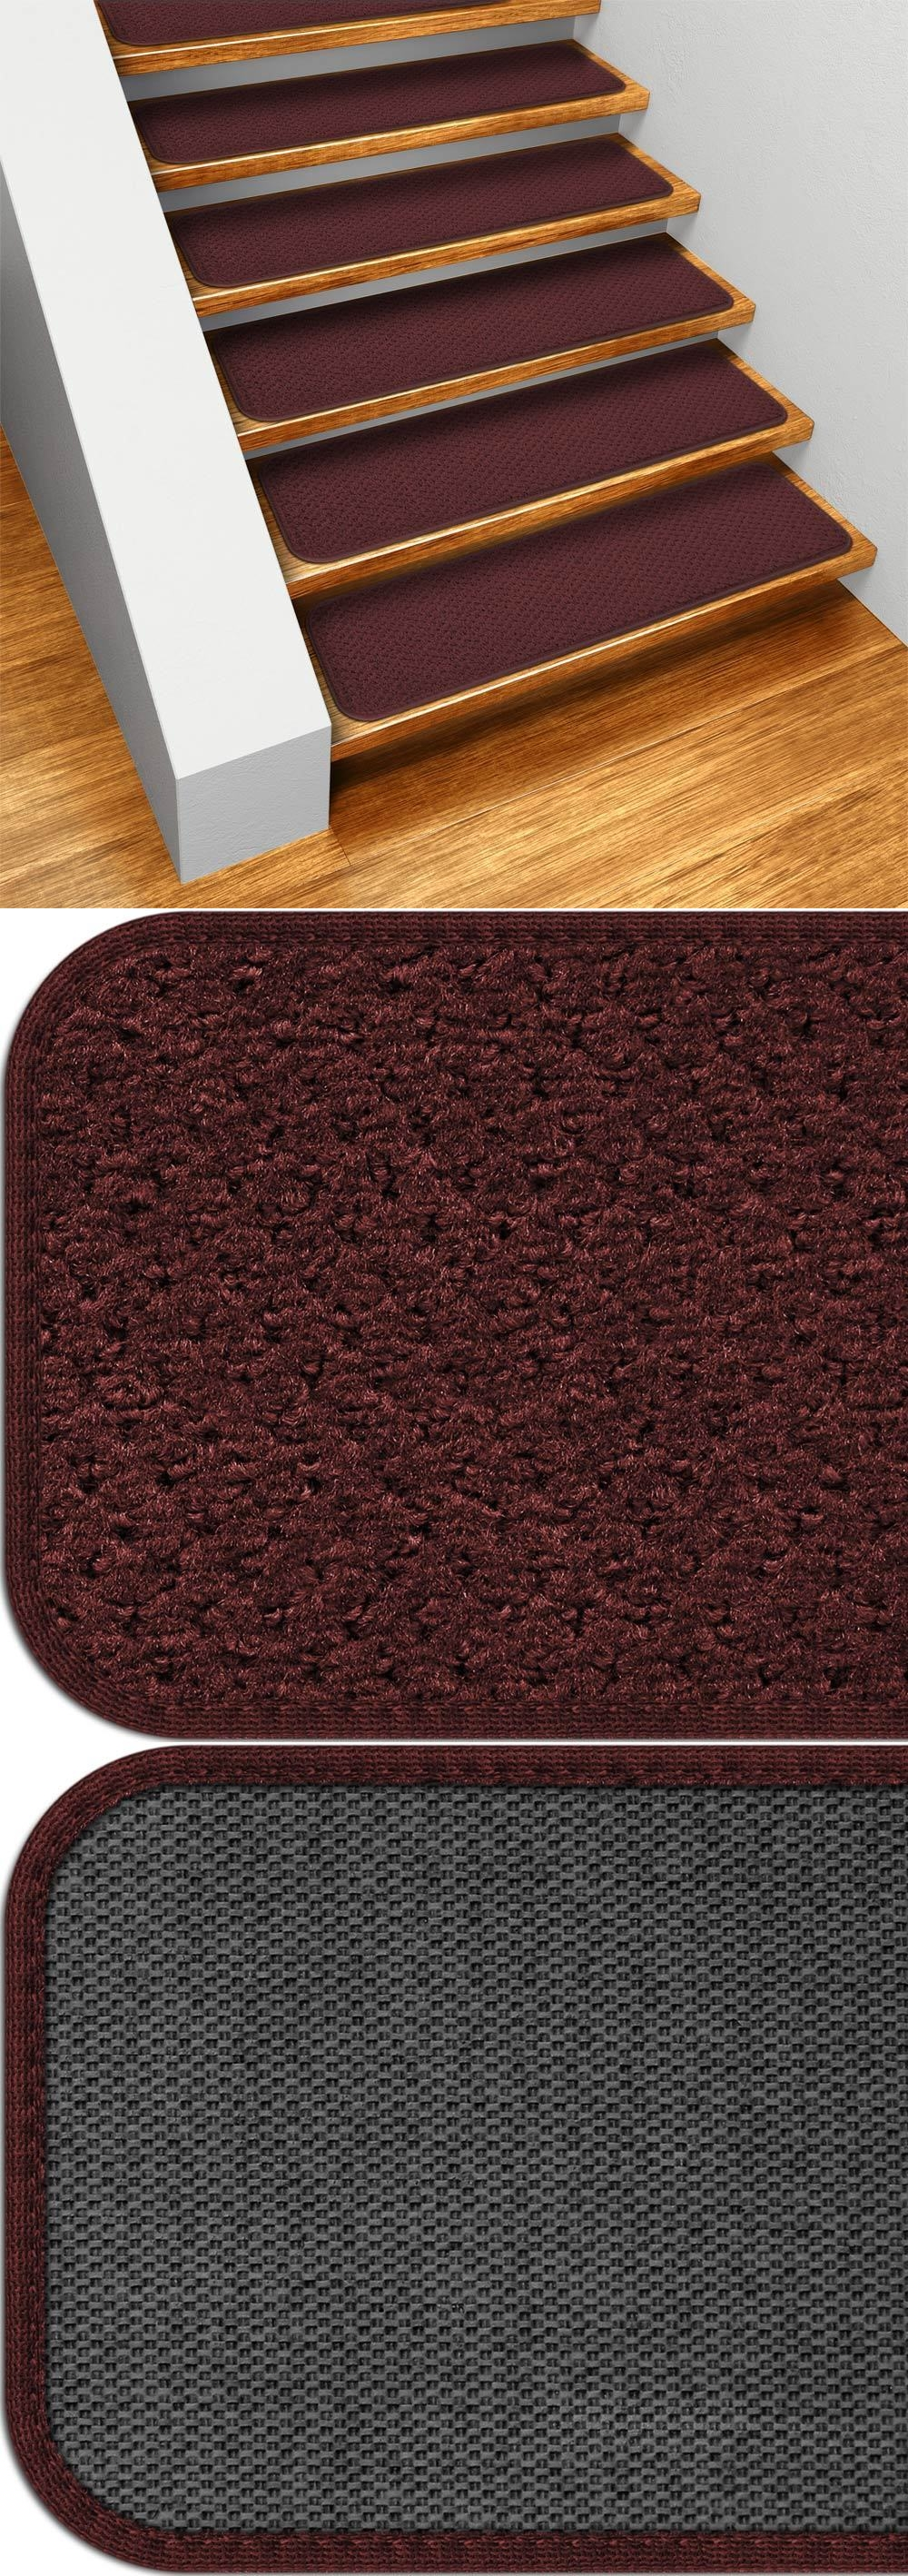 Stair Treads 175517 Set Of 15 Skid Resistant Carpet Stair Treads In Carpet Stair Treads Set Of  (Image 14 of 15)